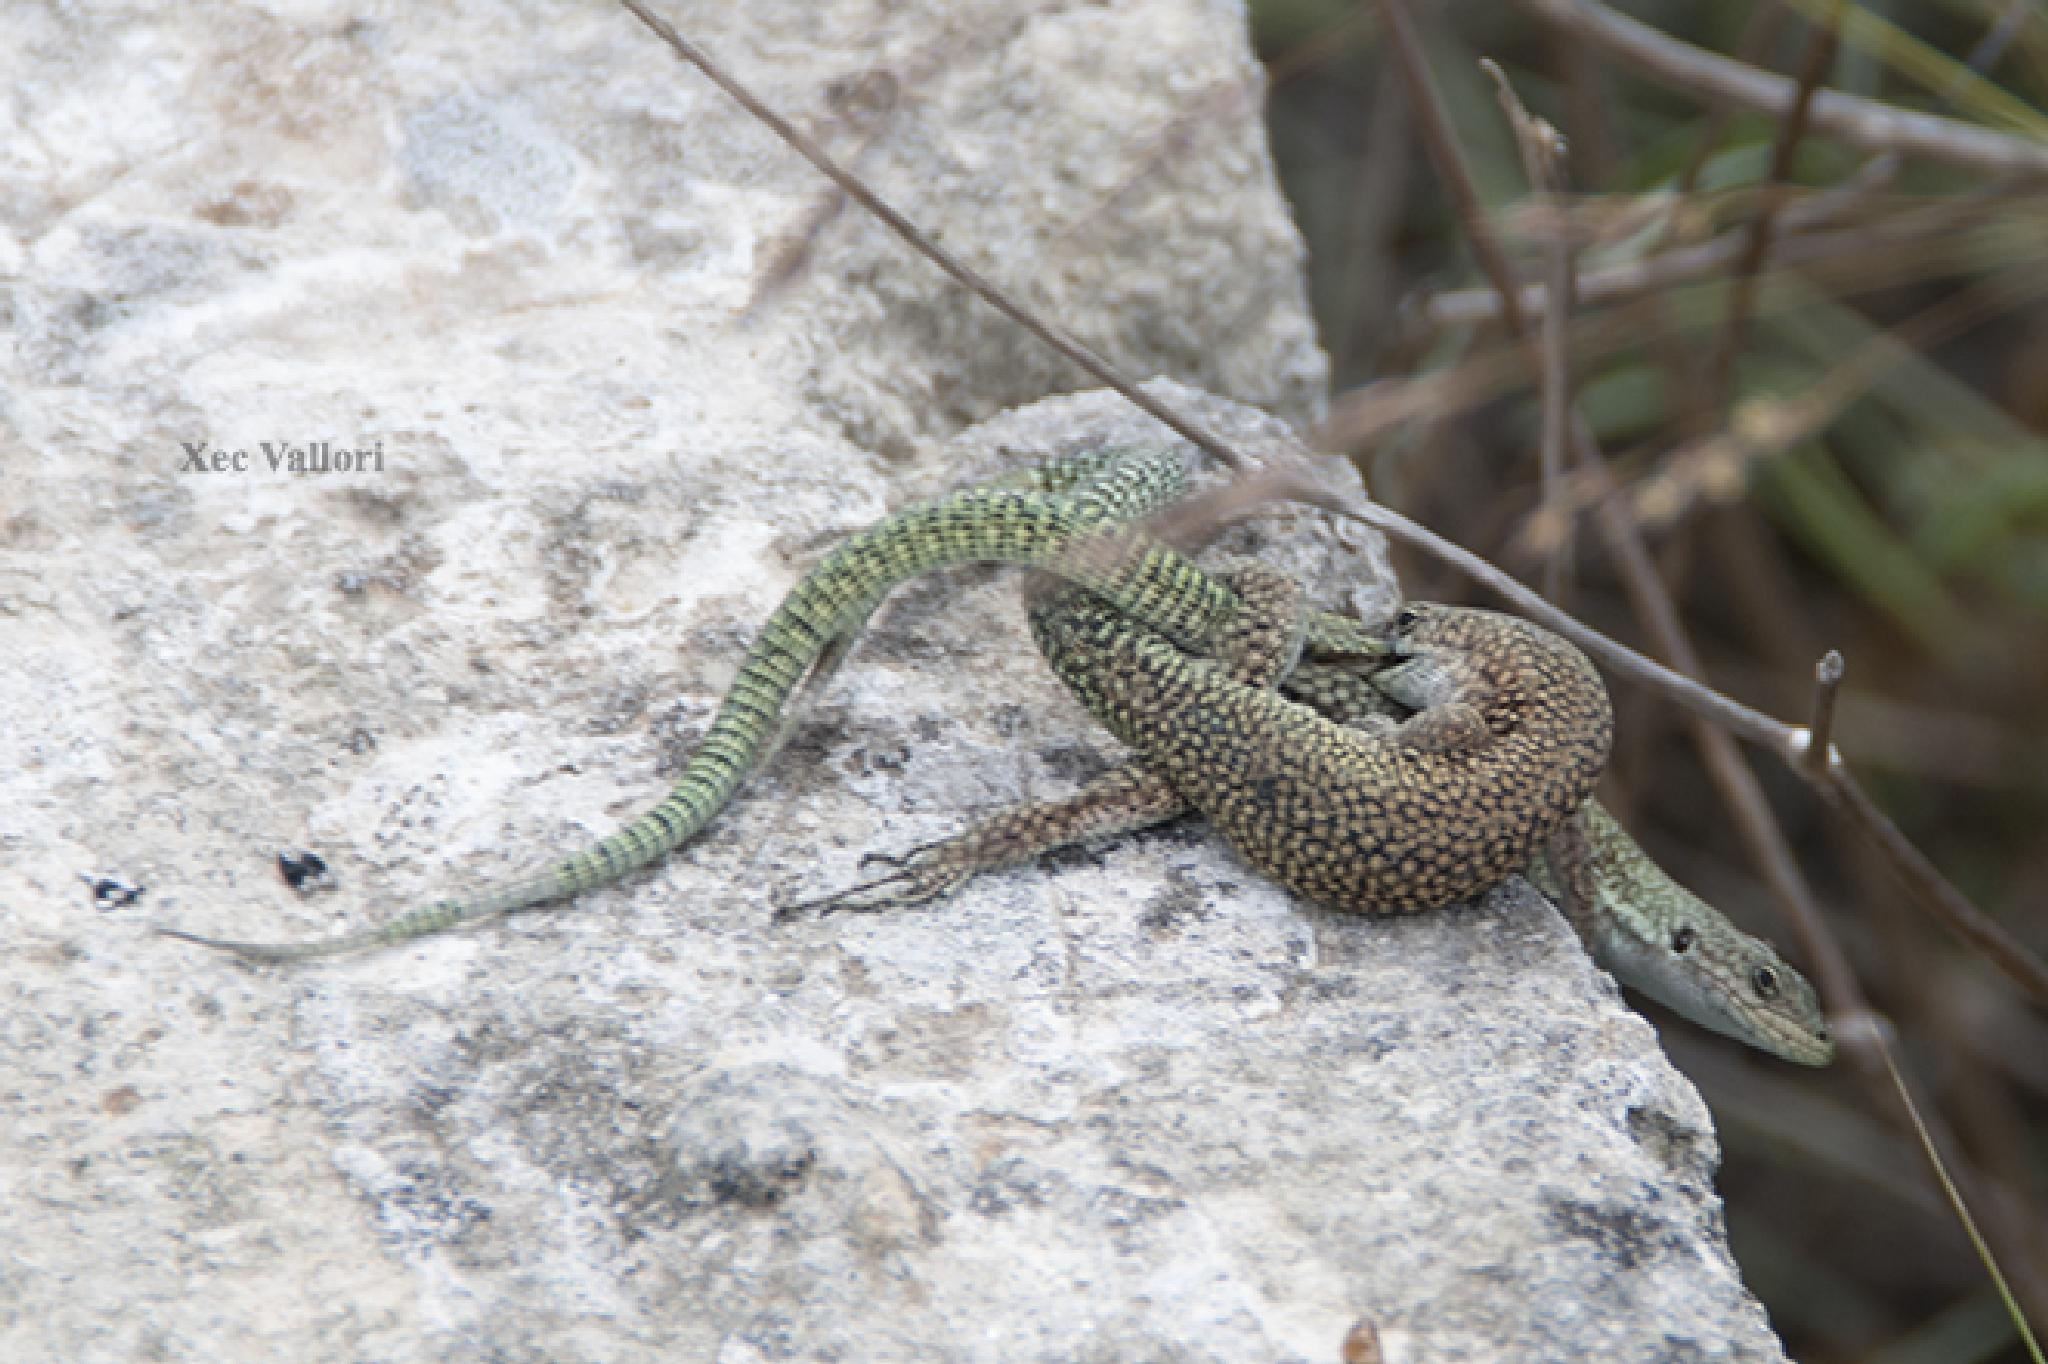 Couple of small lizards by Francesc Vallory